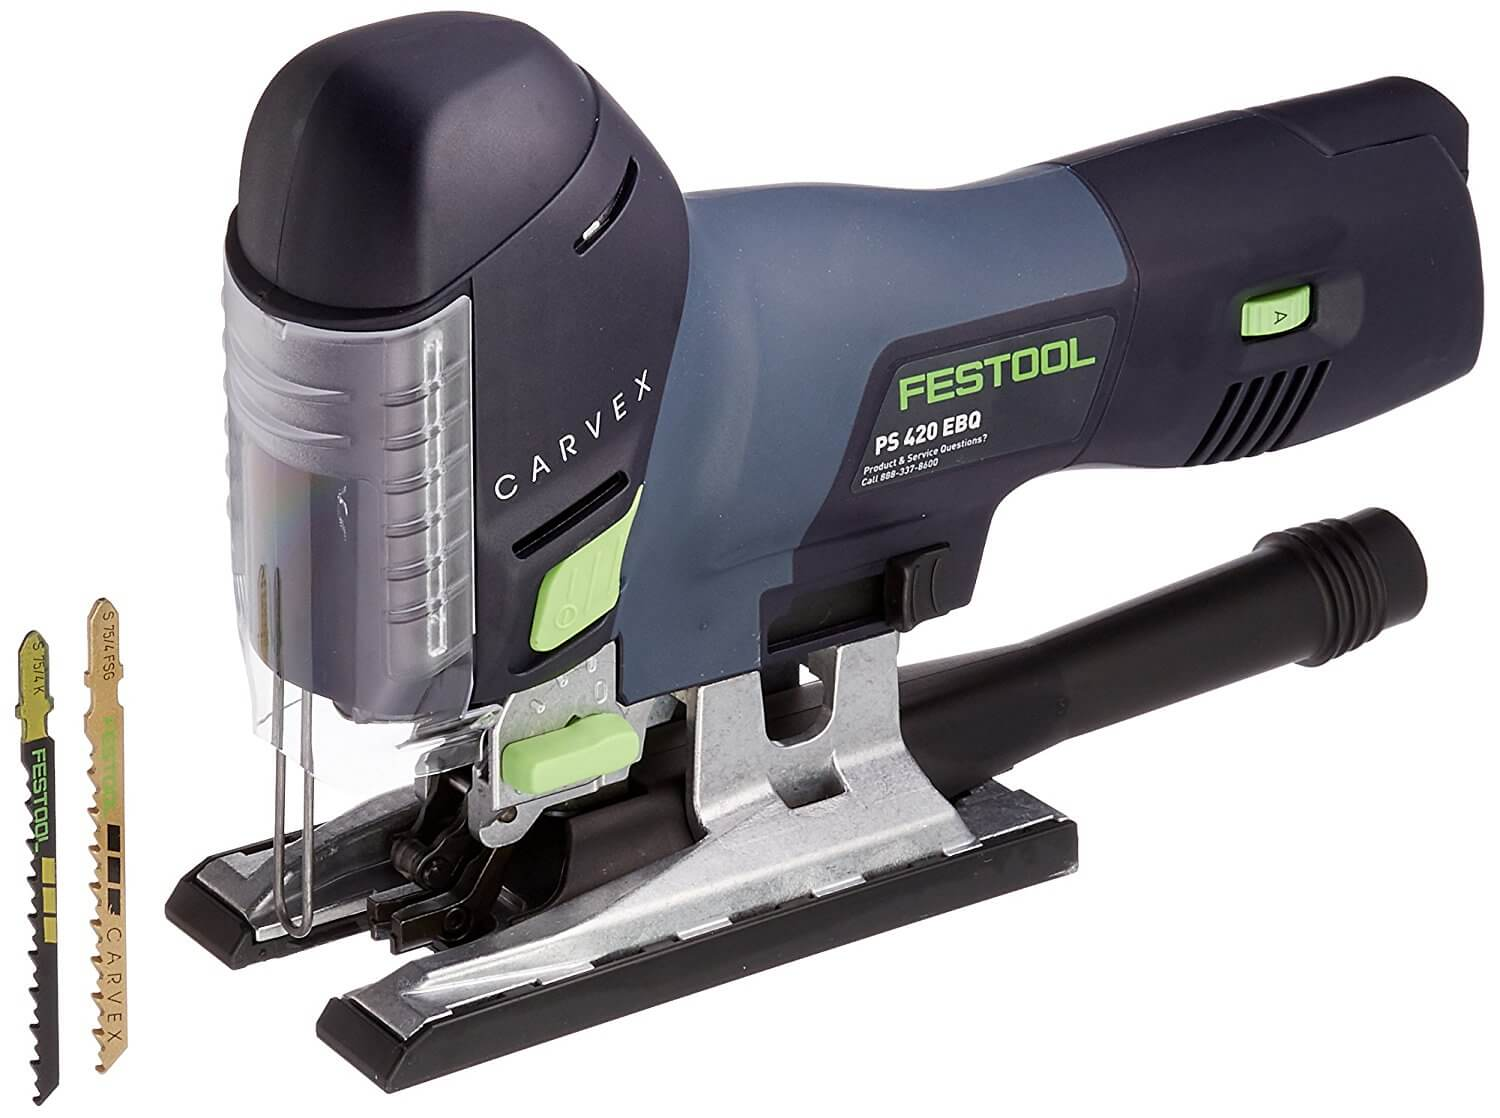 https://mitersawjudge.com/wp-content/uploads/2017/04/Festool-561593-Carvex-PS-420-Jigsaw